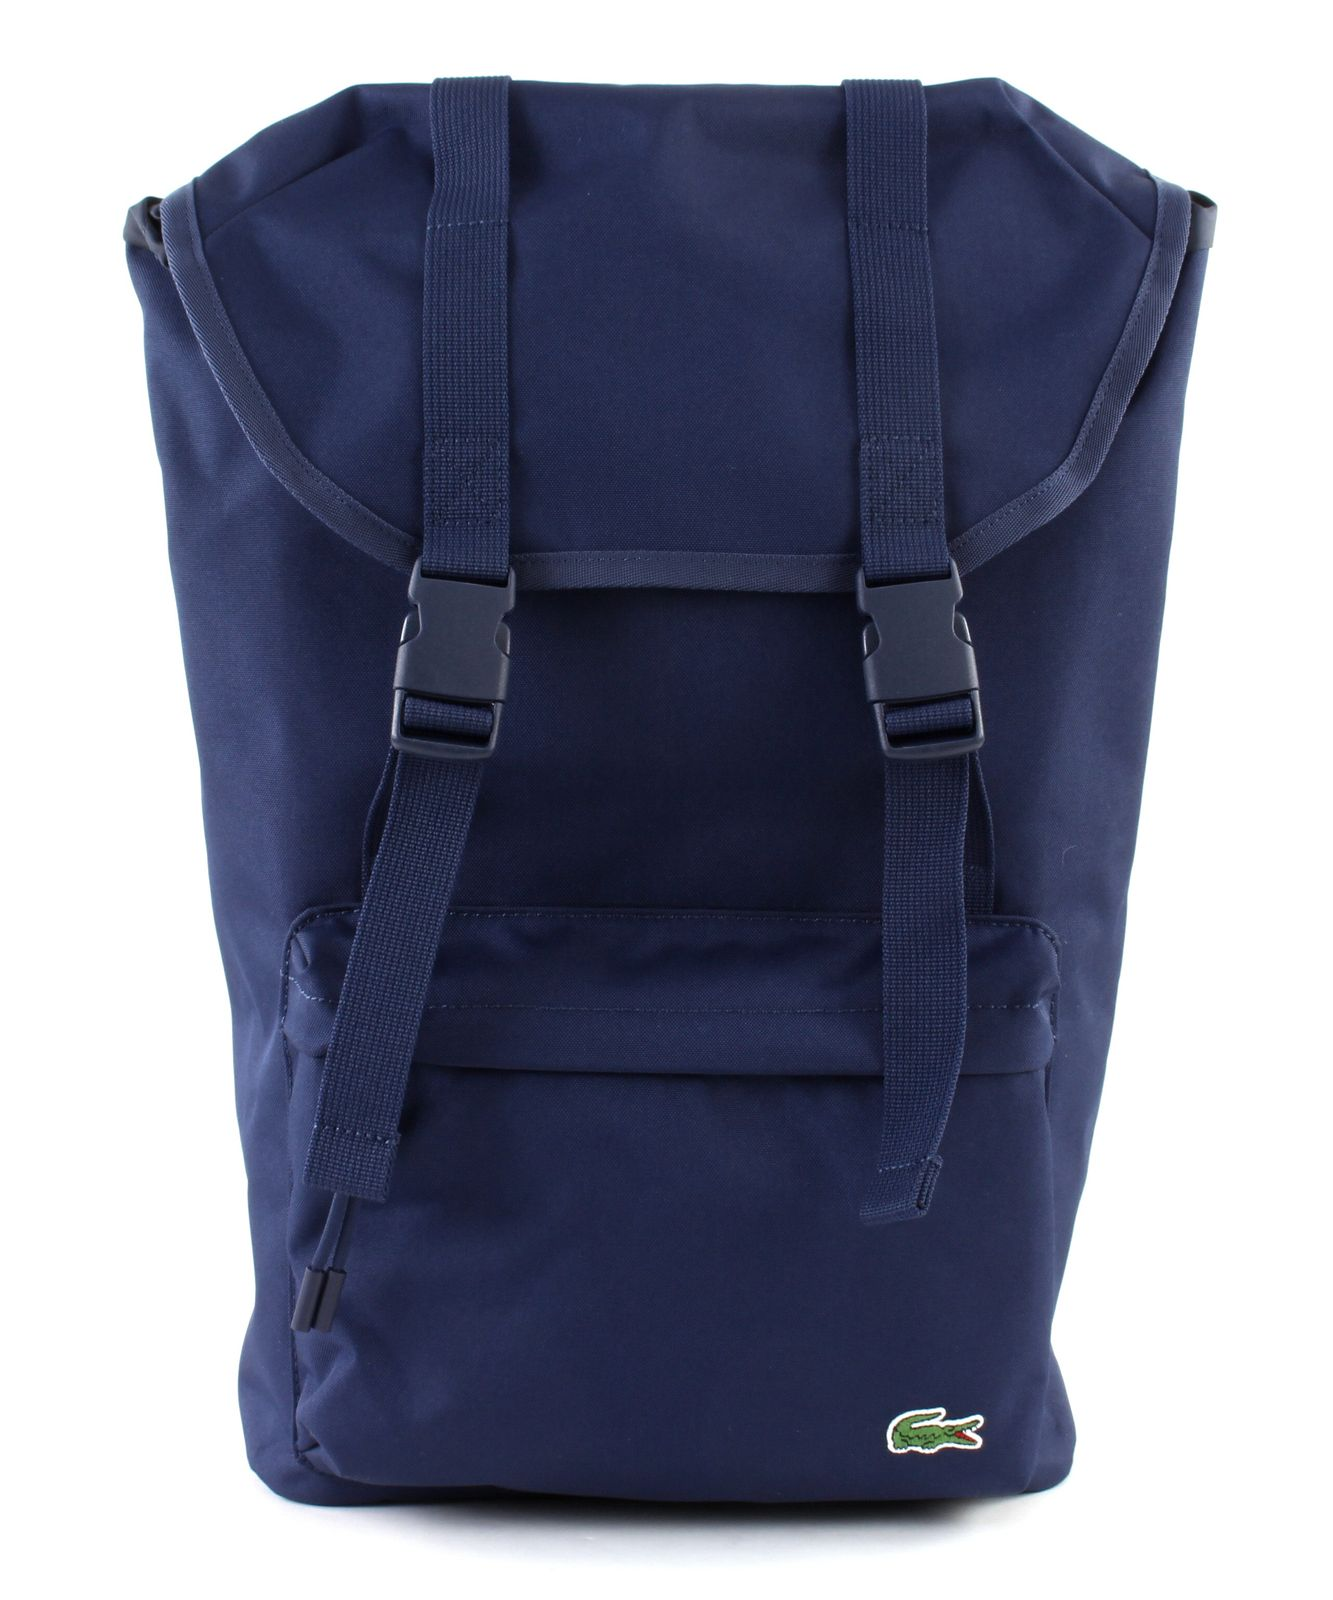 7954c65f4f8e LACOSTE Backpack Neocroc Peacoat